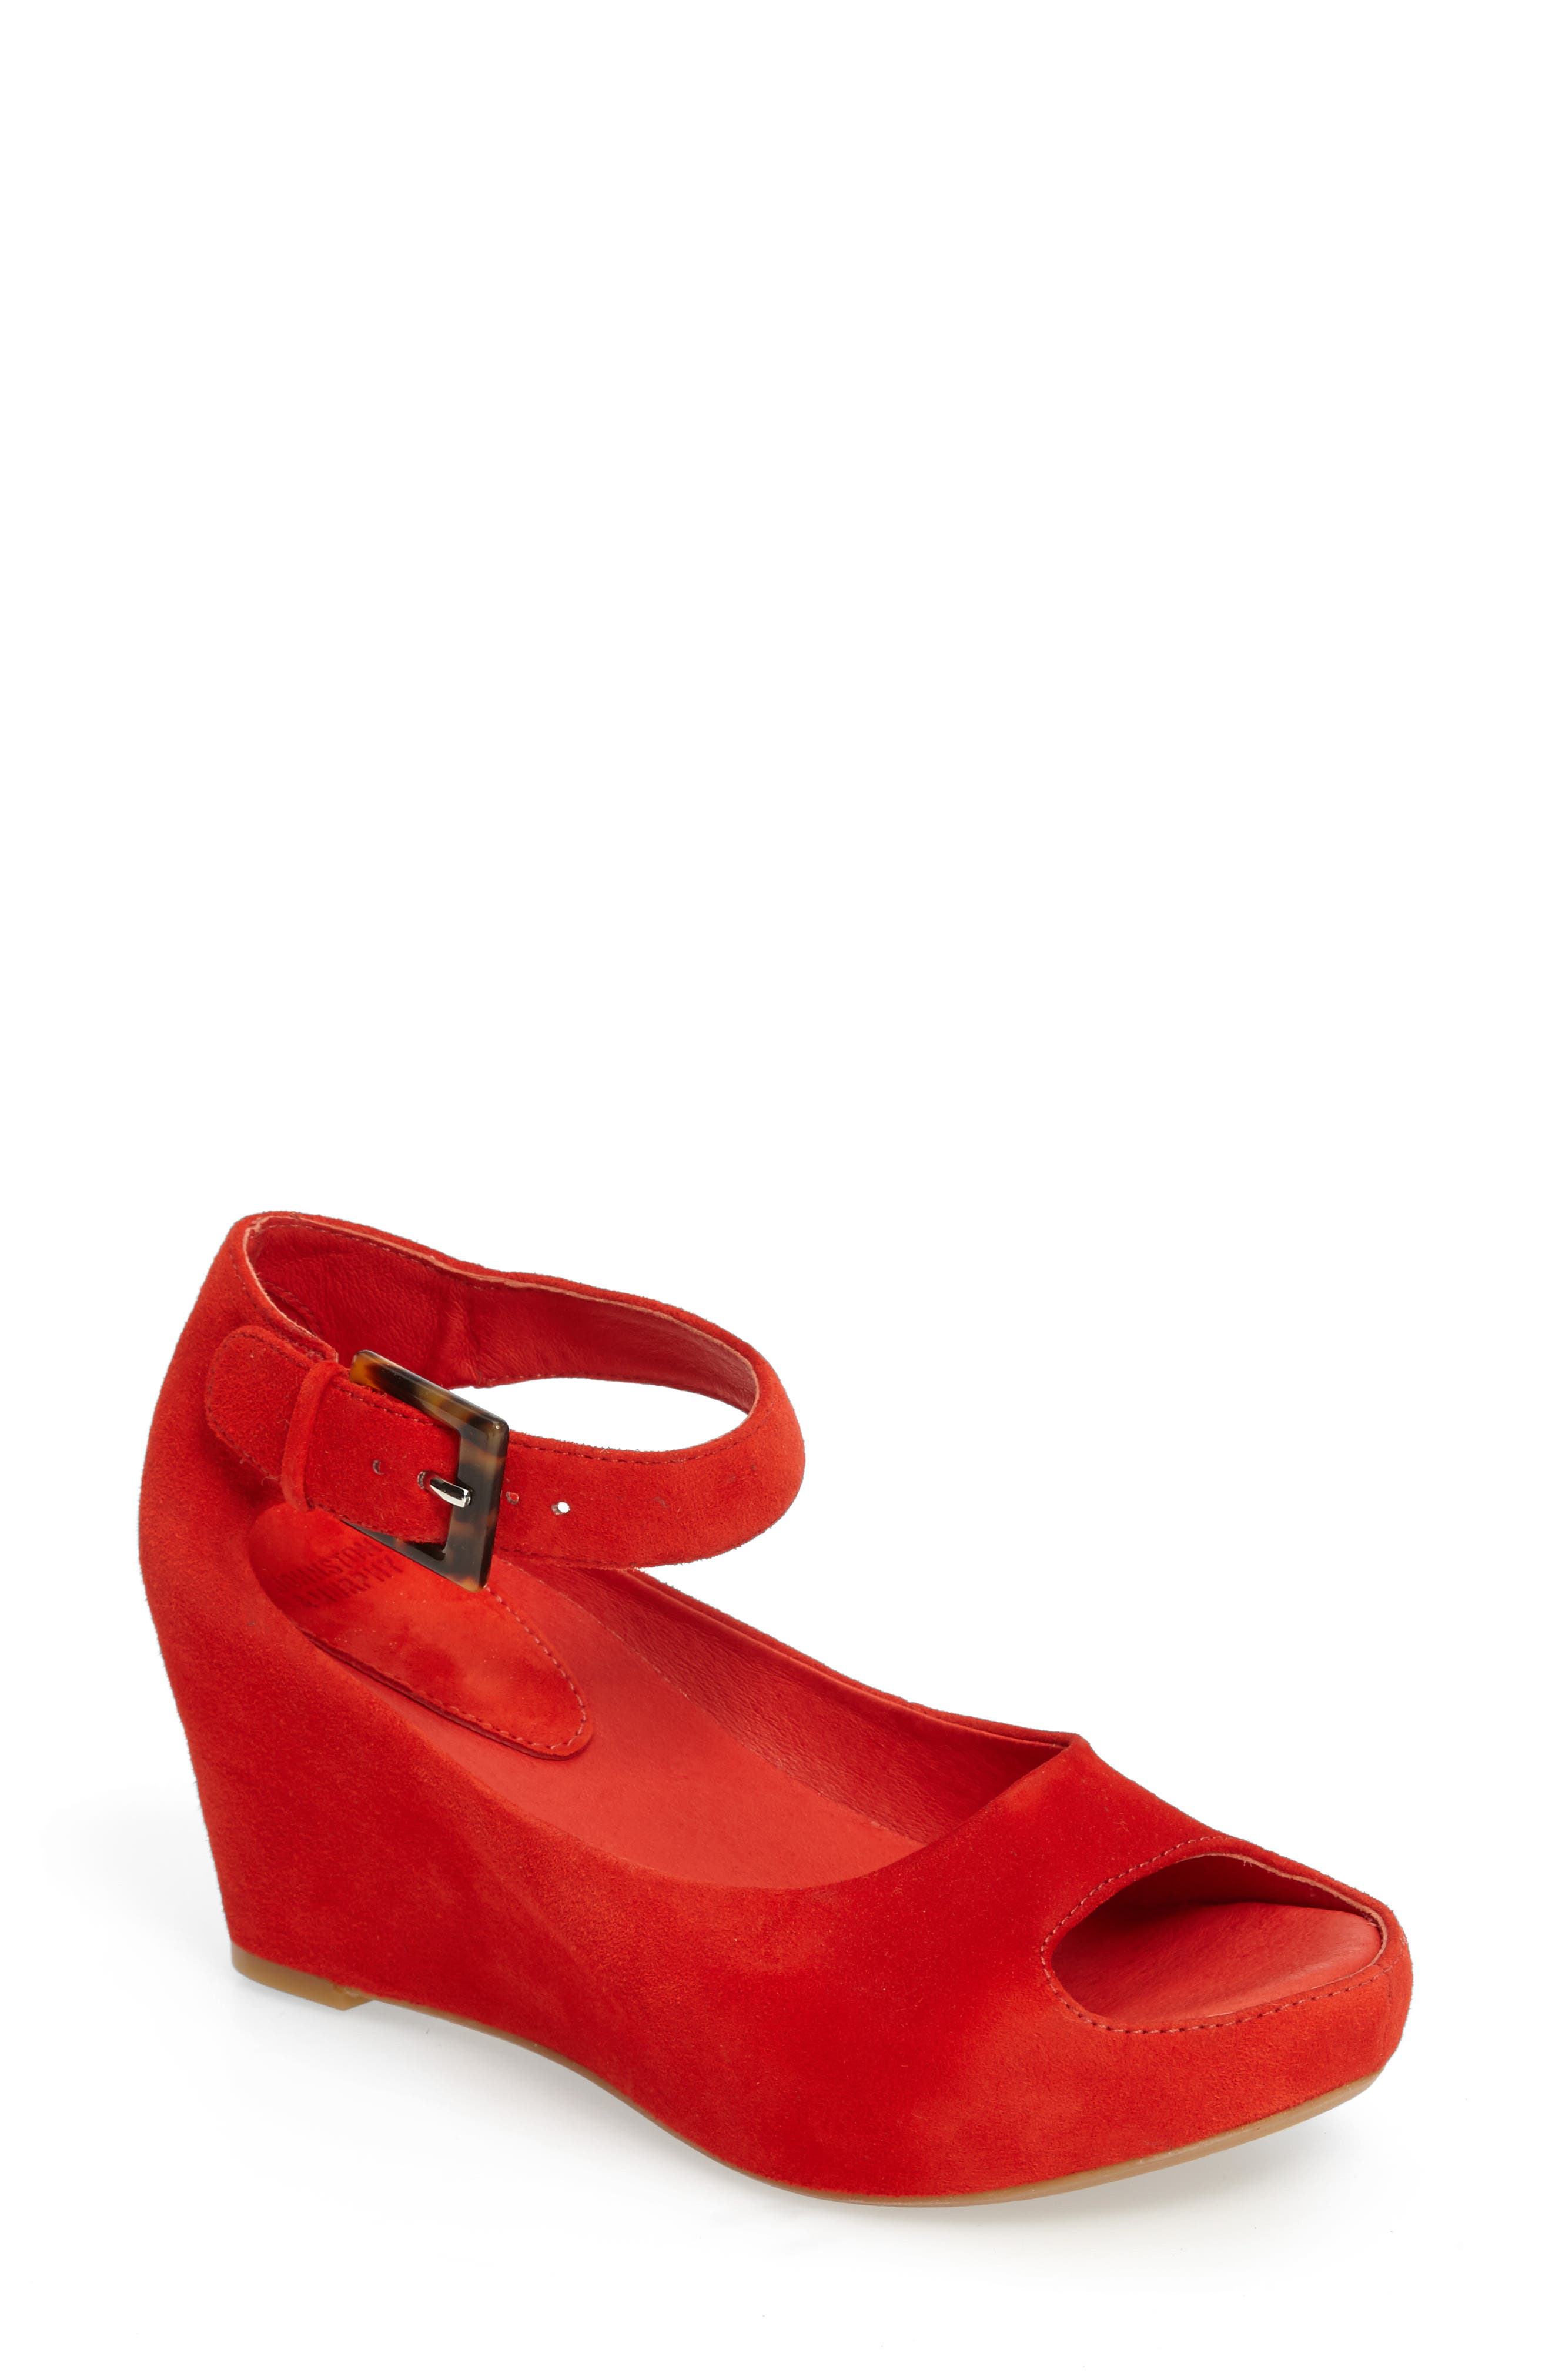 'Tricia' Ankle Strap Sandal,                         Main,                         color, FLAMINGO RED SUEDE